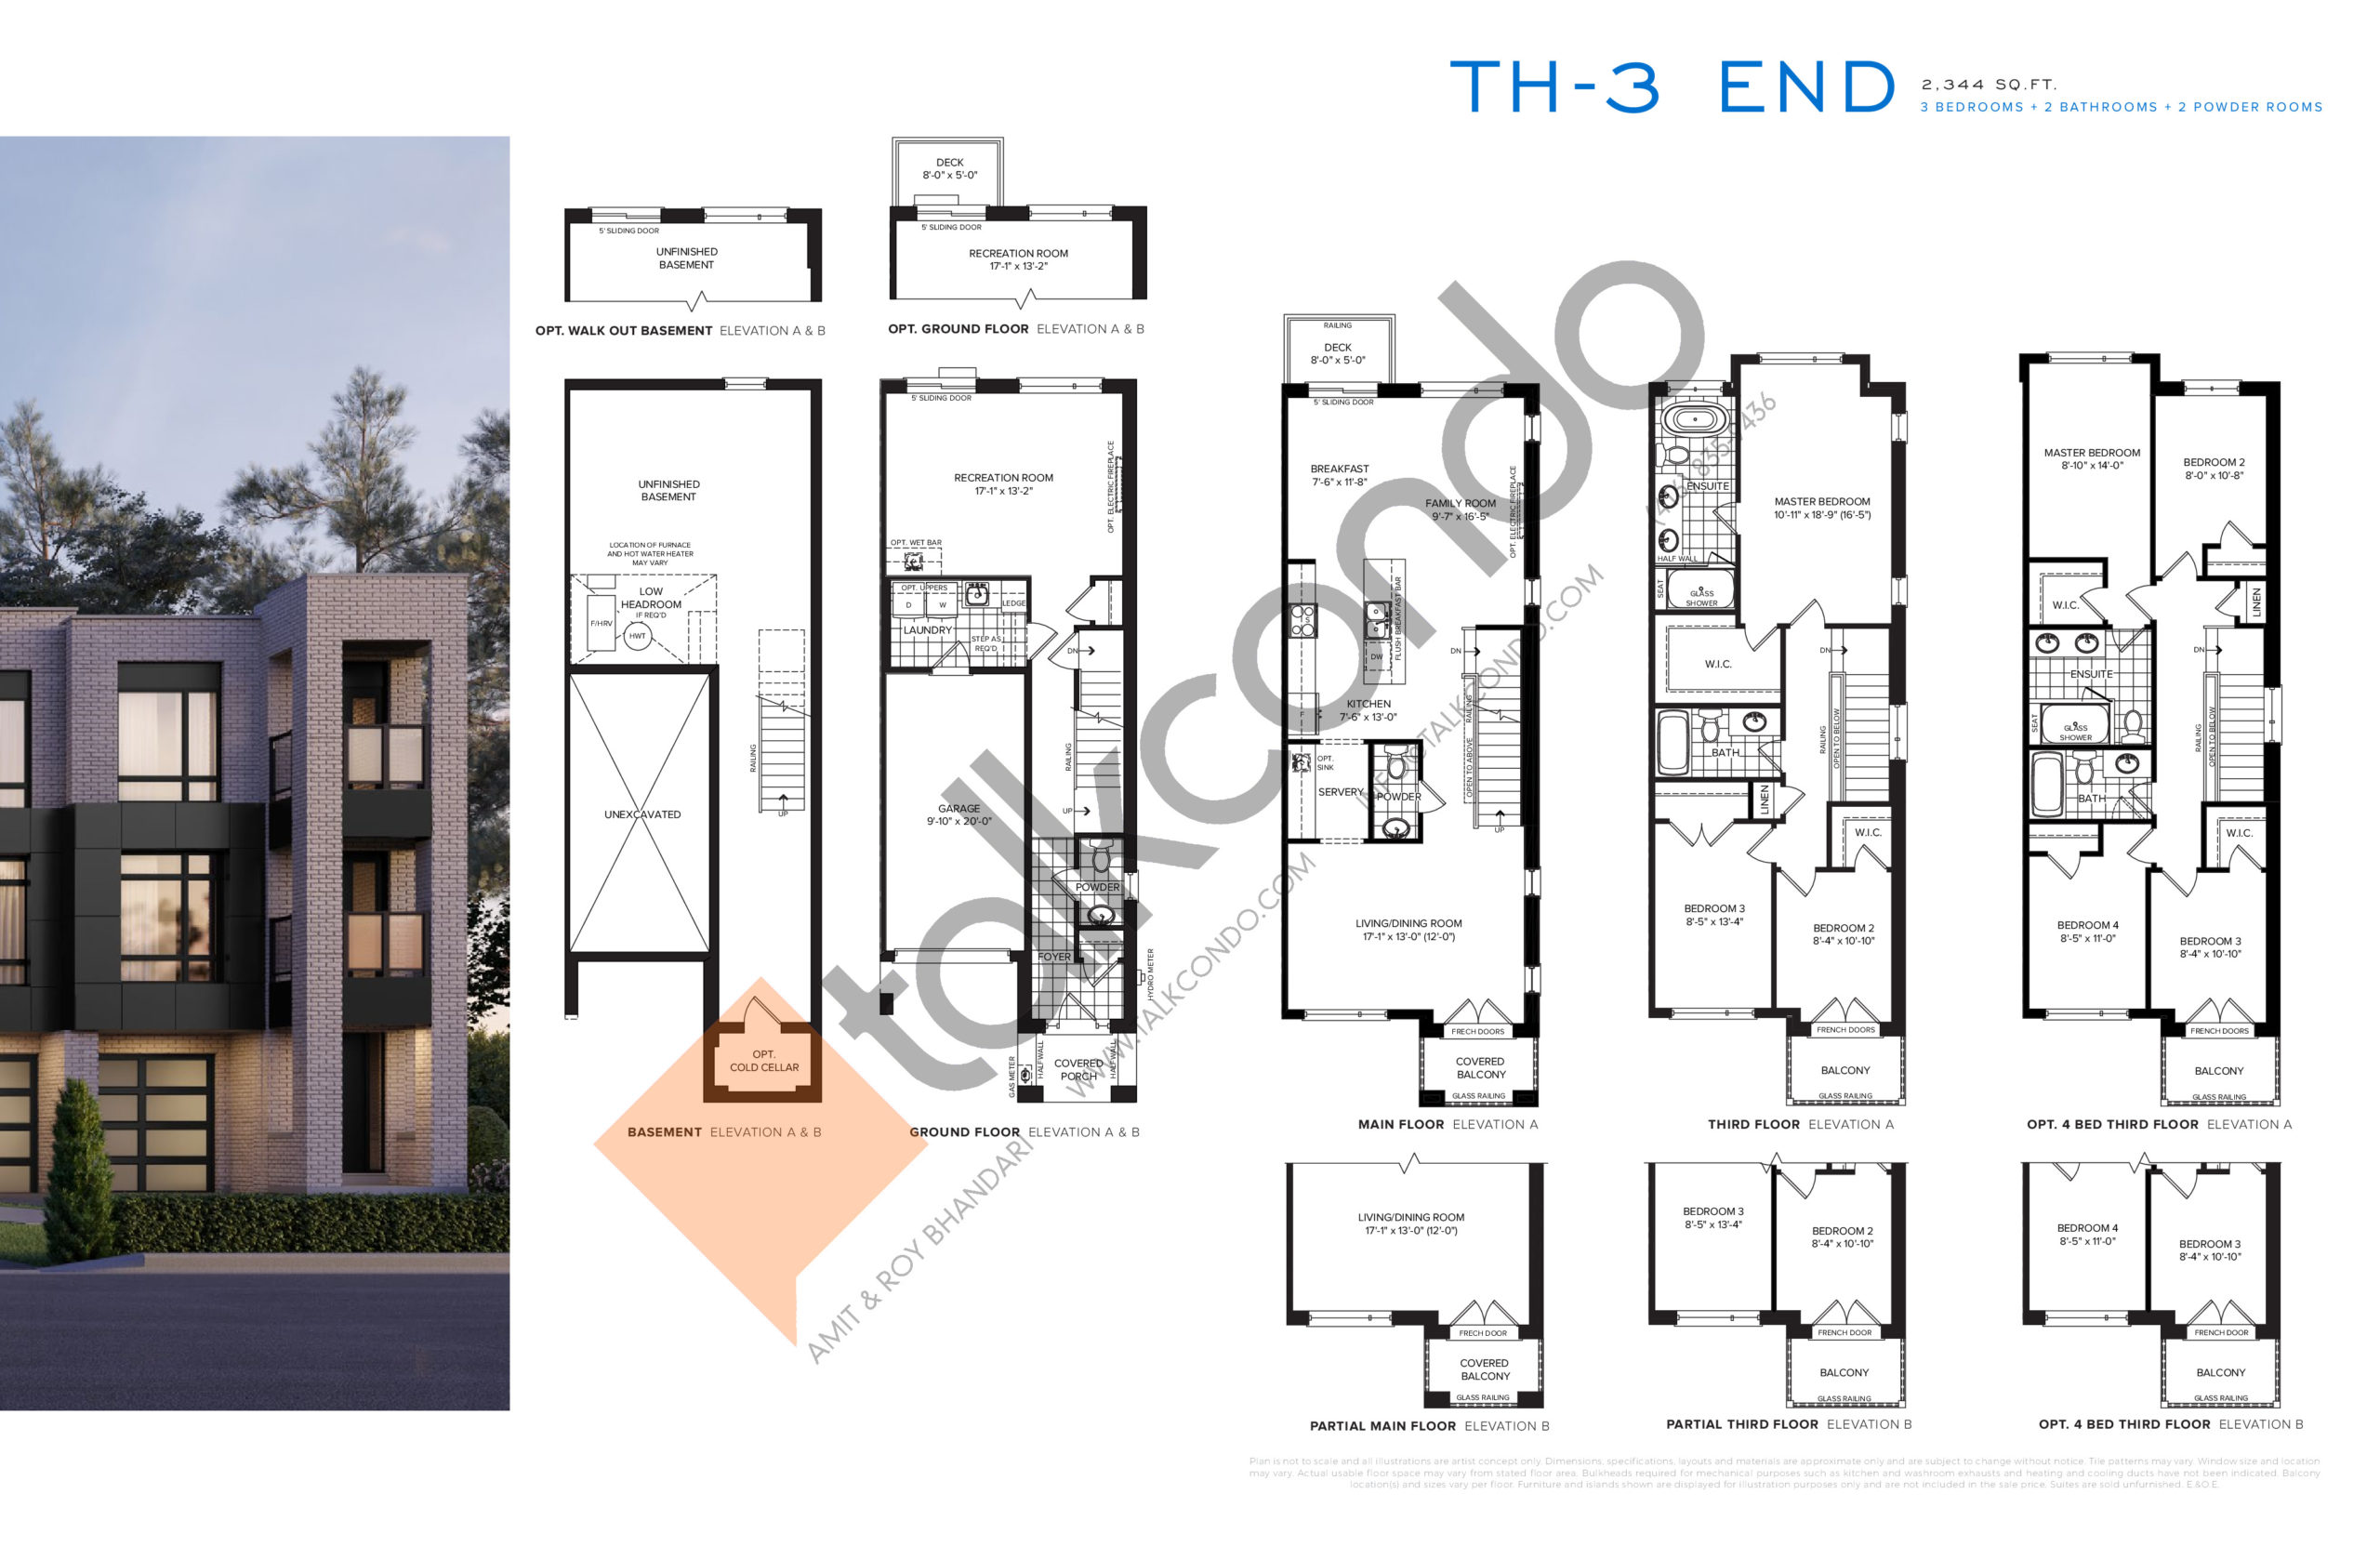 TH-3 End Floor Plan at SXSW Ravine Towns - 2344 sq.ft